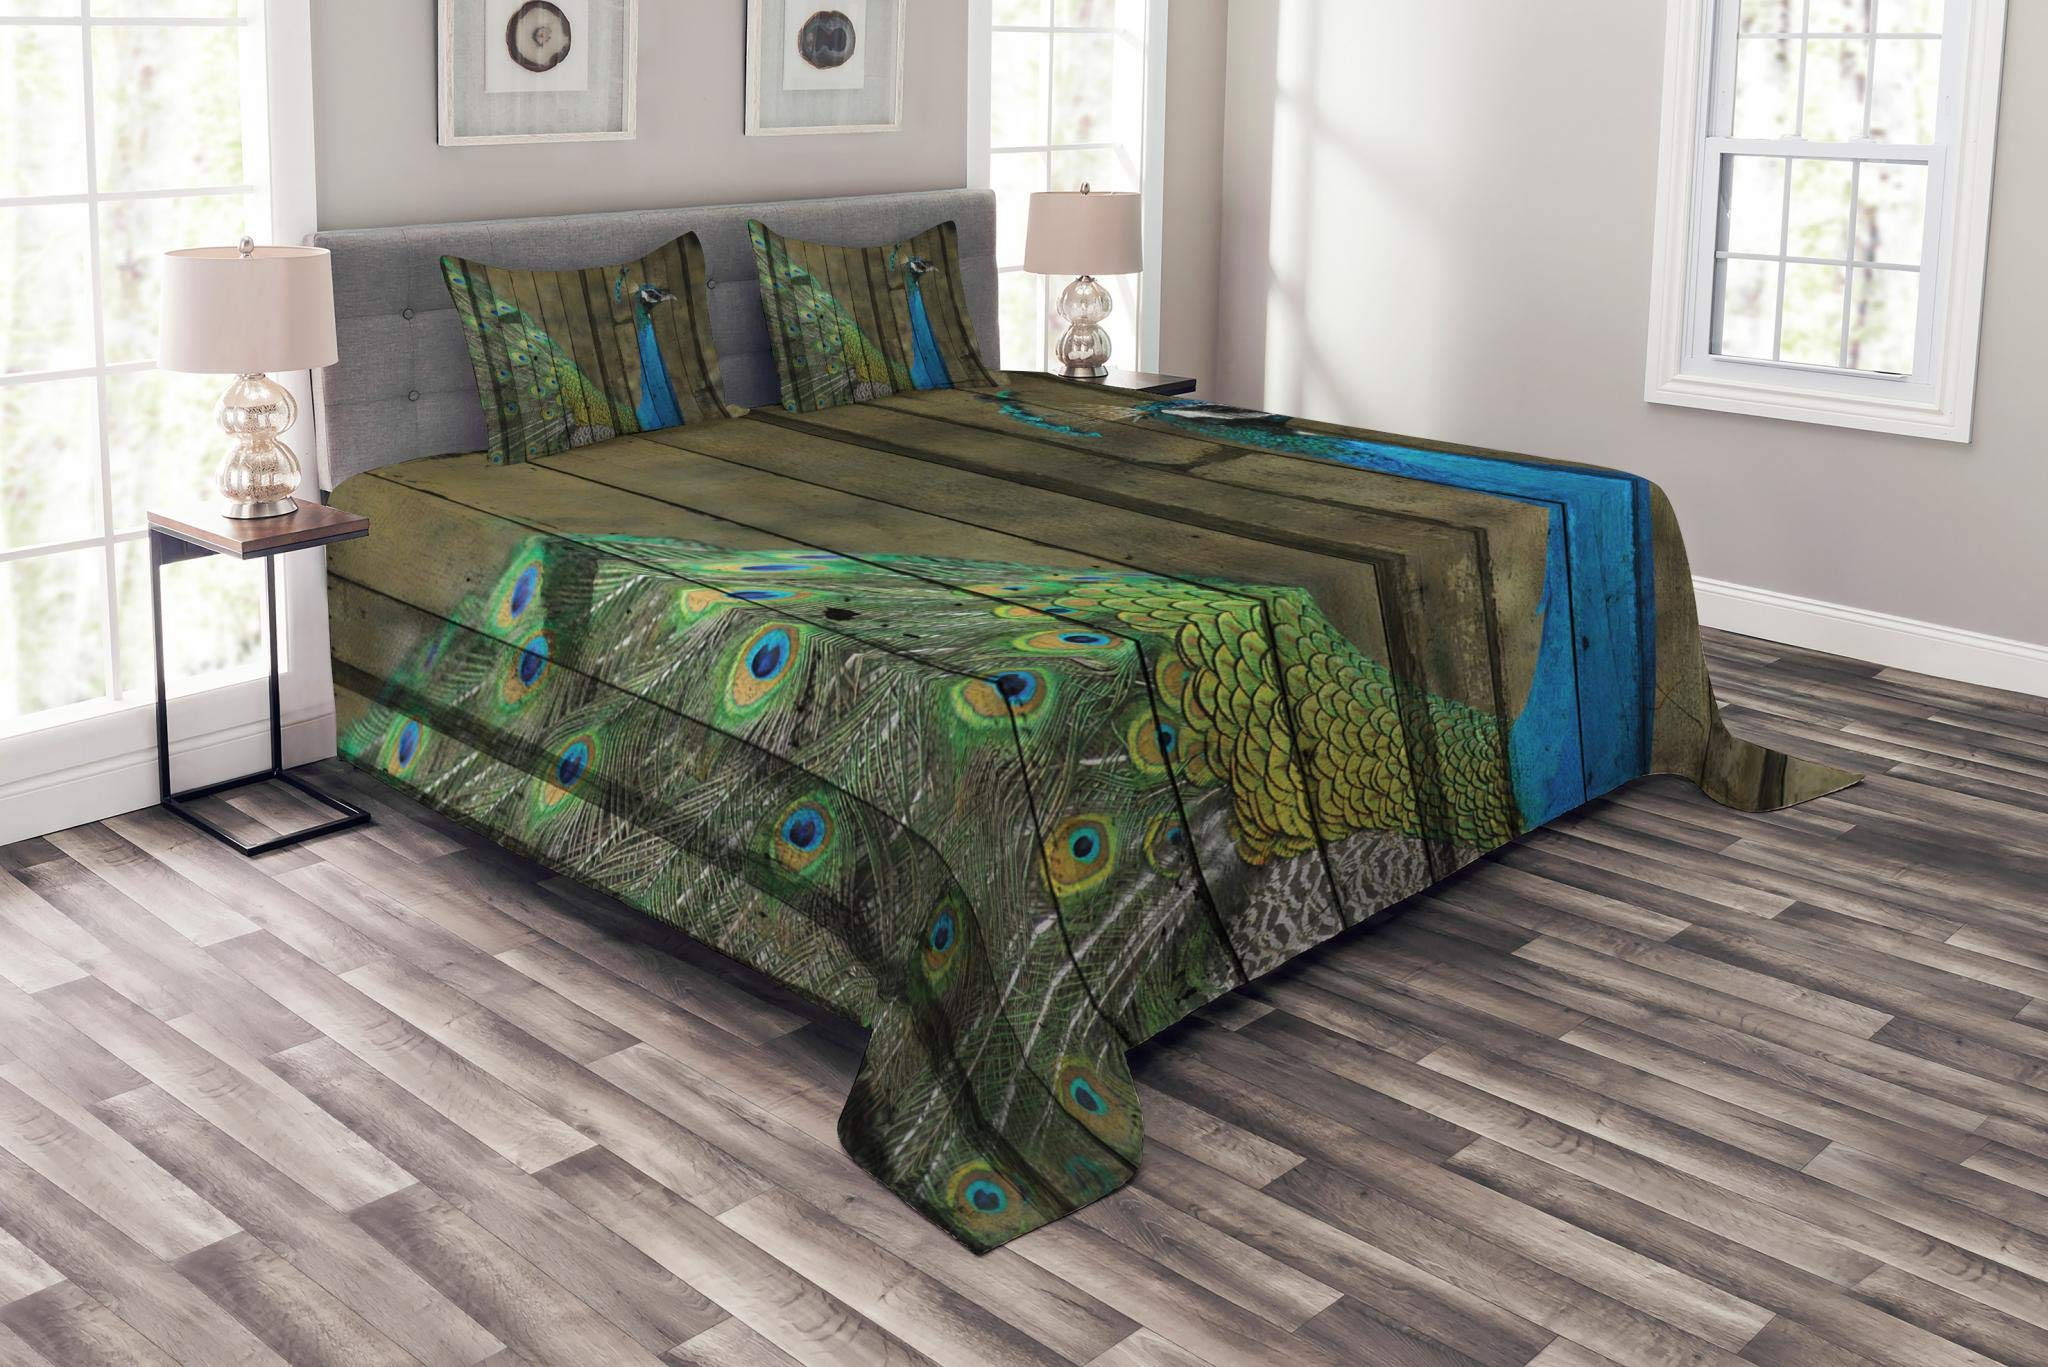 Lunarable Peacock Bedspread Set King Size, Peacock Mural on The Wall Royal Mythological Animal Represents Patience Art, Decorative Quilted 3 Piece Coverlet Set with 2 Pillow Shams, Brown Green Teal